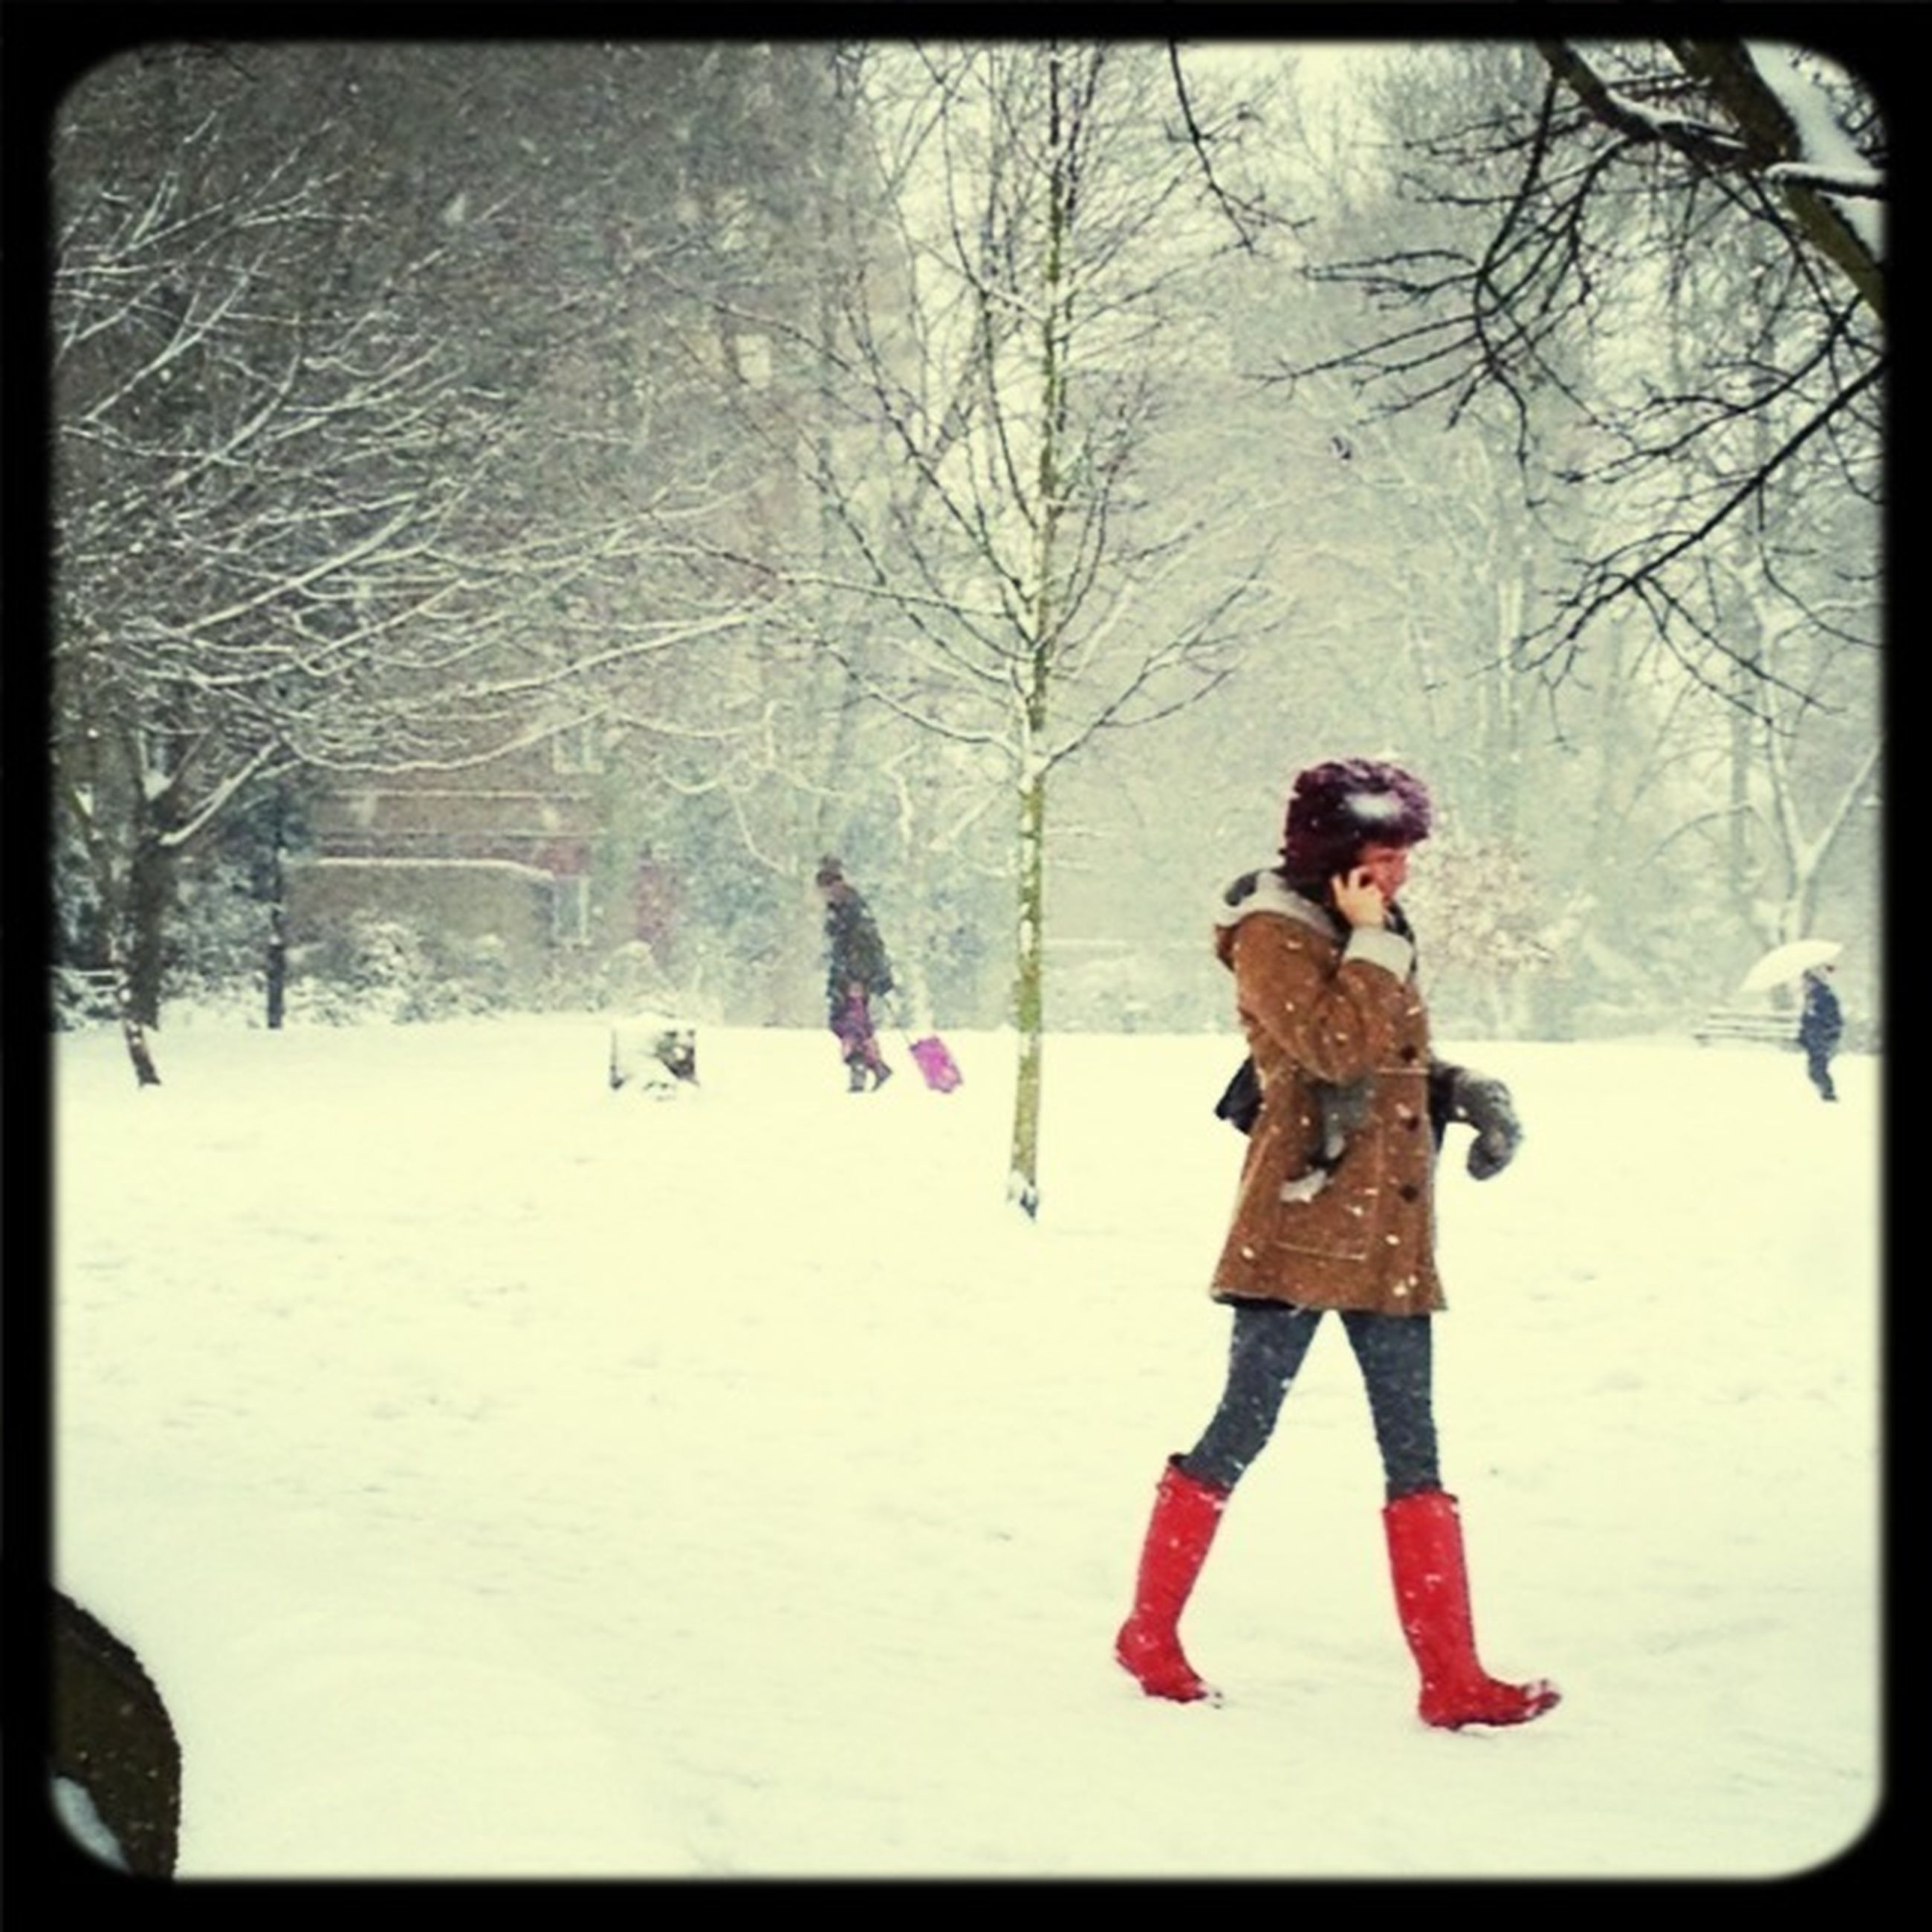 lifestyles, winter, full length, leisure activity, snow, cold temperature, season, warm clothing, transfer print, tree, childhood, togetherness, person, auto post production filter, girls, love, boys, casual clothing